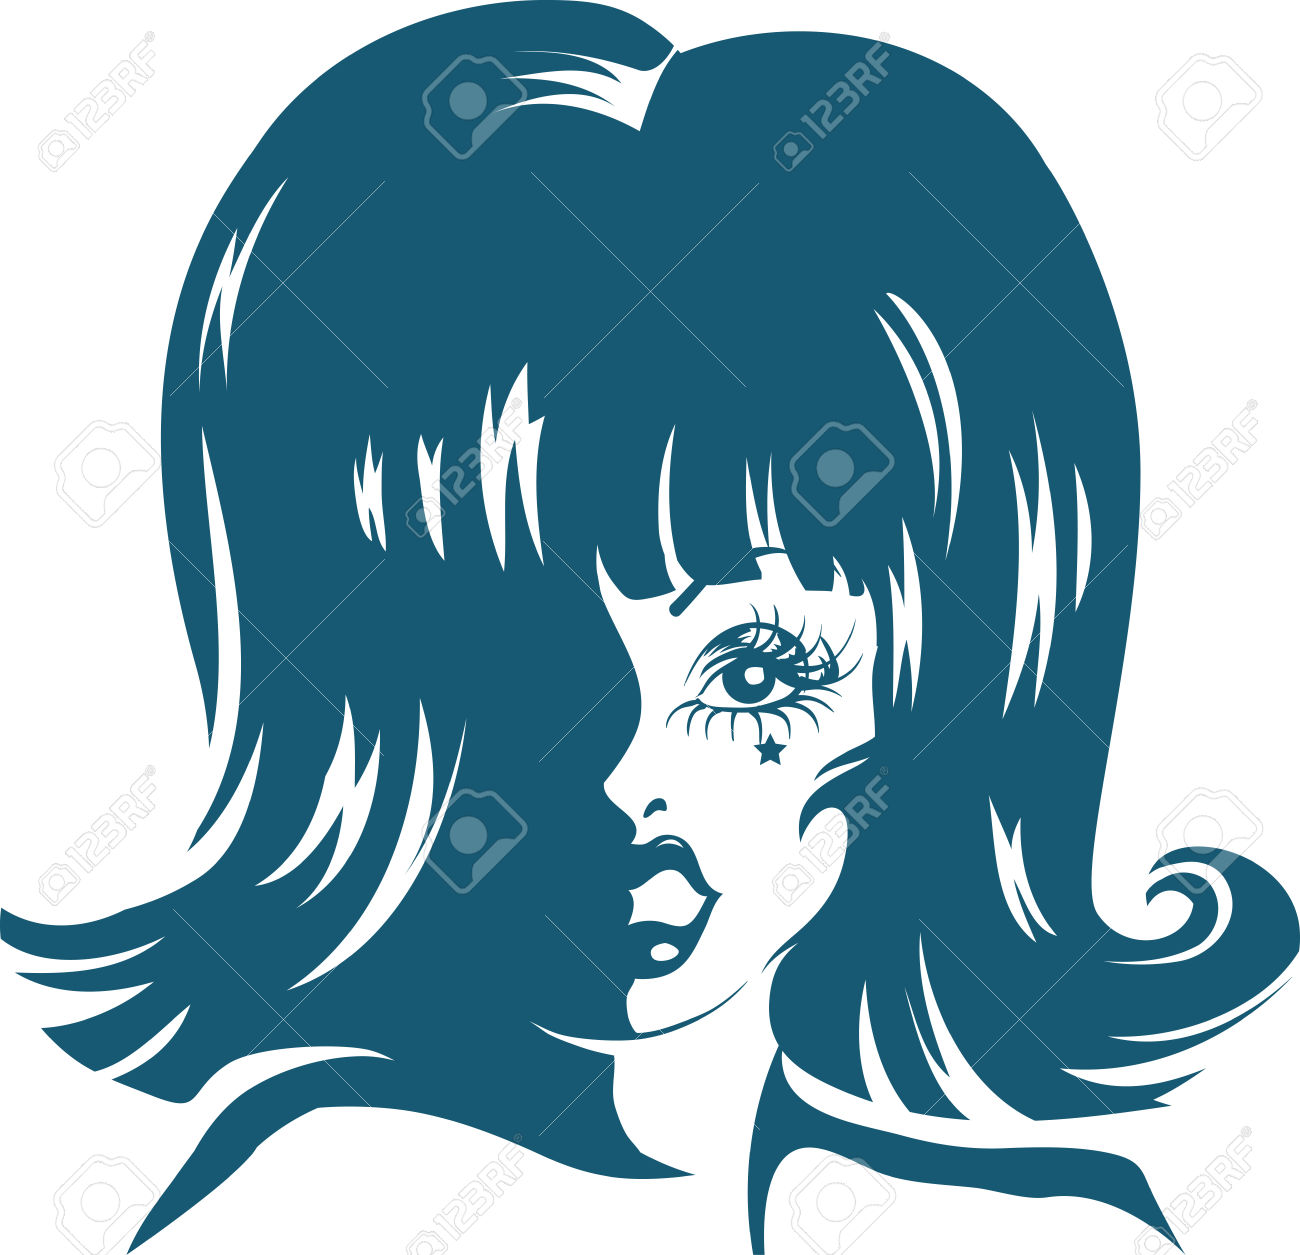 Stencil Illustration Of A Drag Queen Done In Blue Ink Stock Photo.